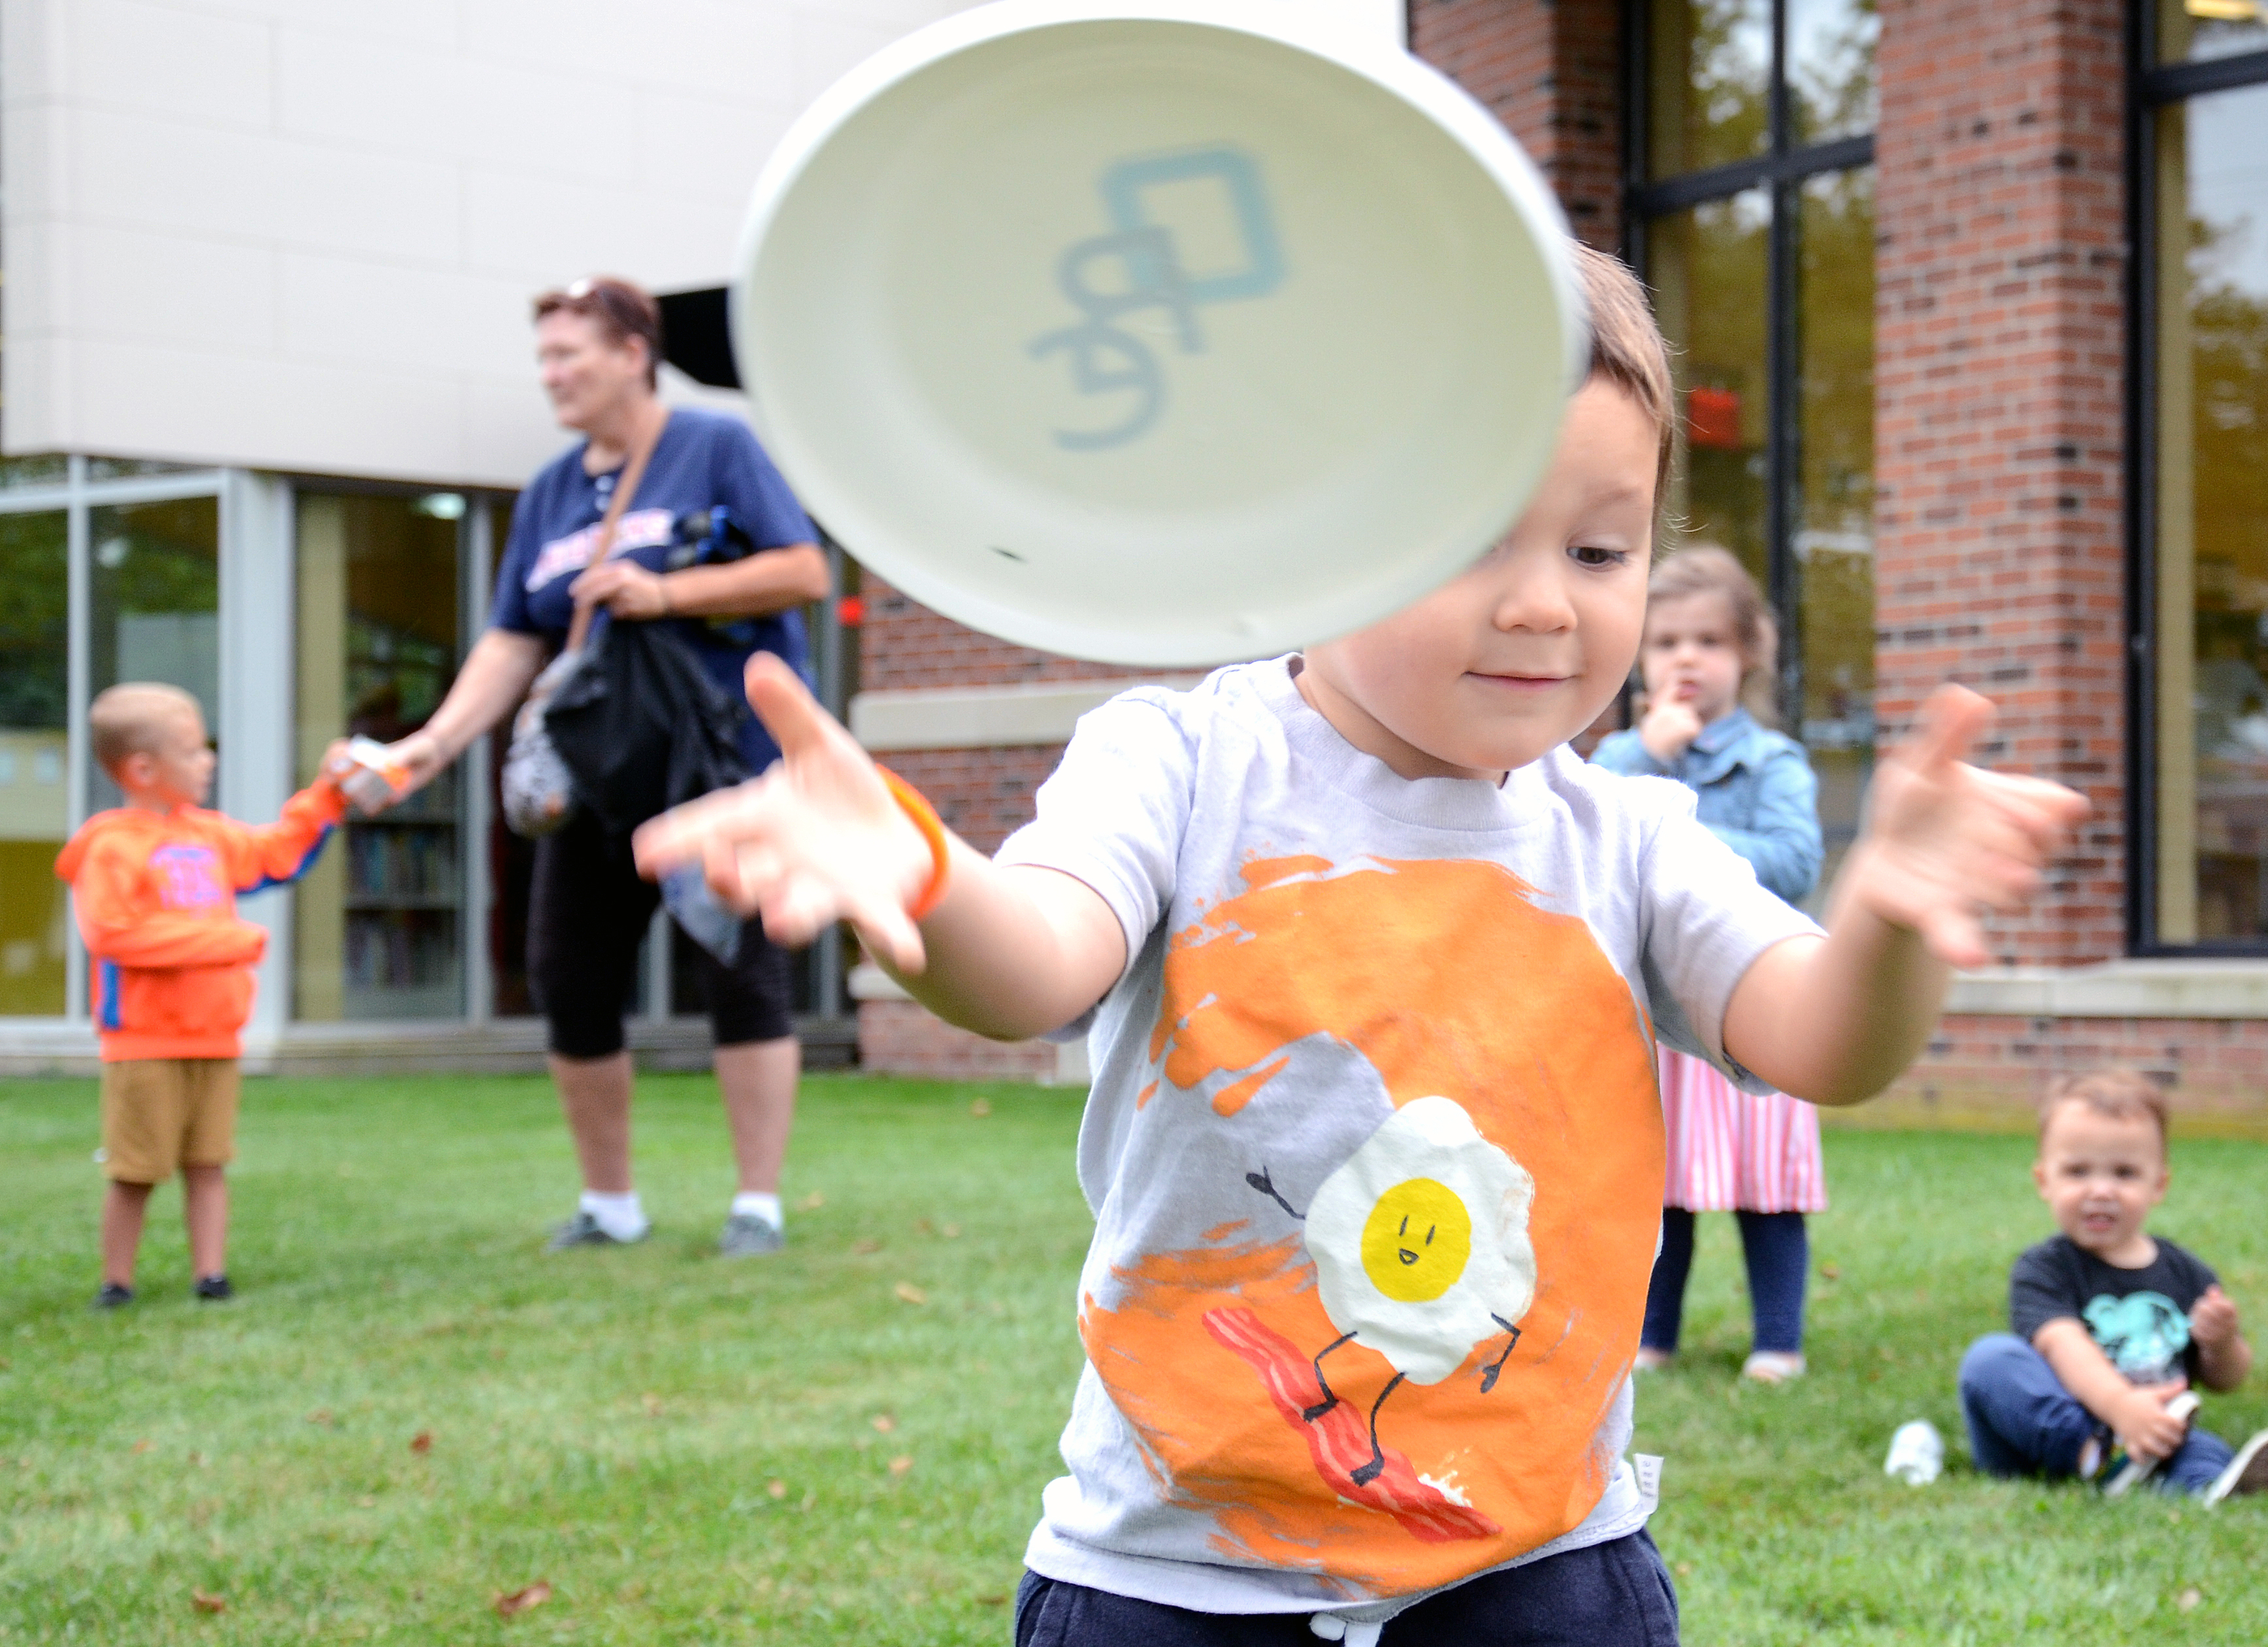 Tobias Balderez, age 3, Toledo, enjoys the outdoor activities at the Dolly Parton Imagination Library kickoff held at the Oregon Branch Library. (Press photo by Ken Grosjean)